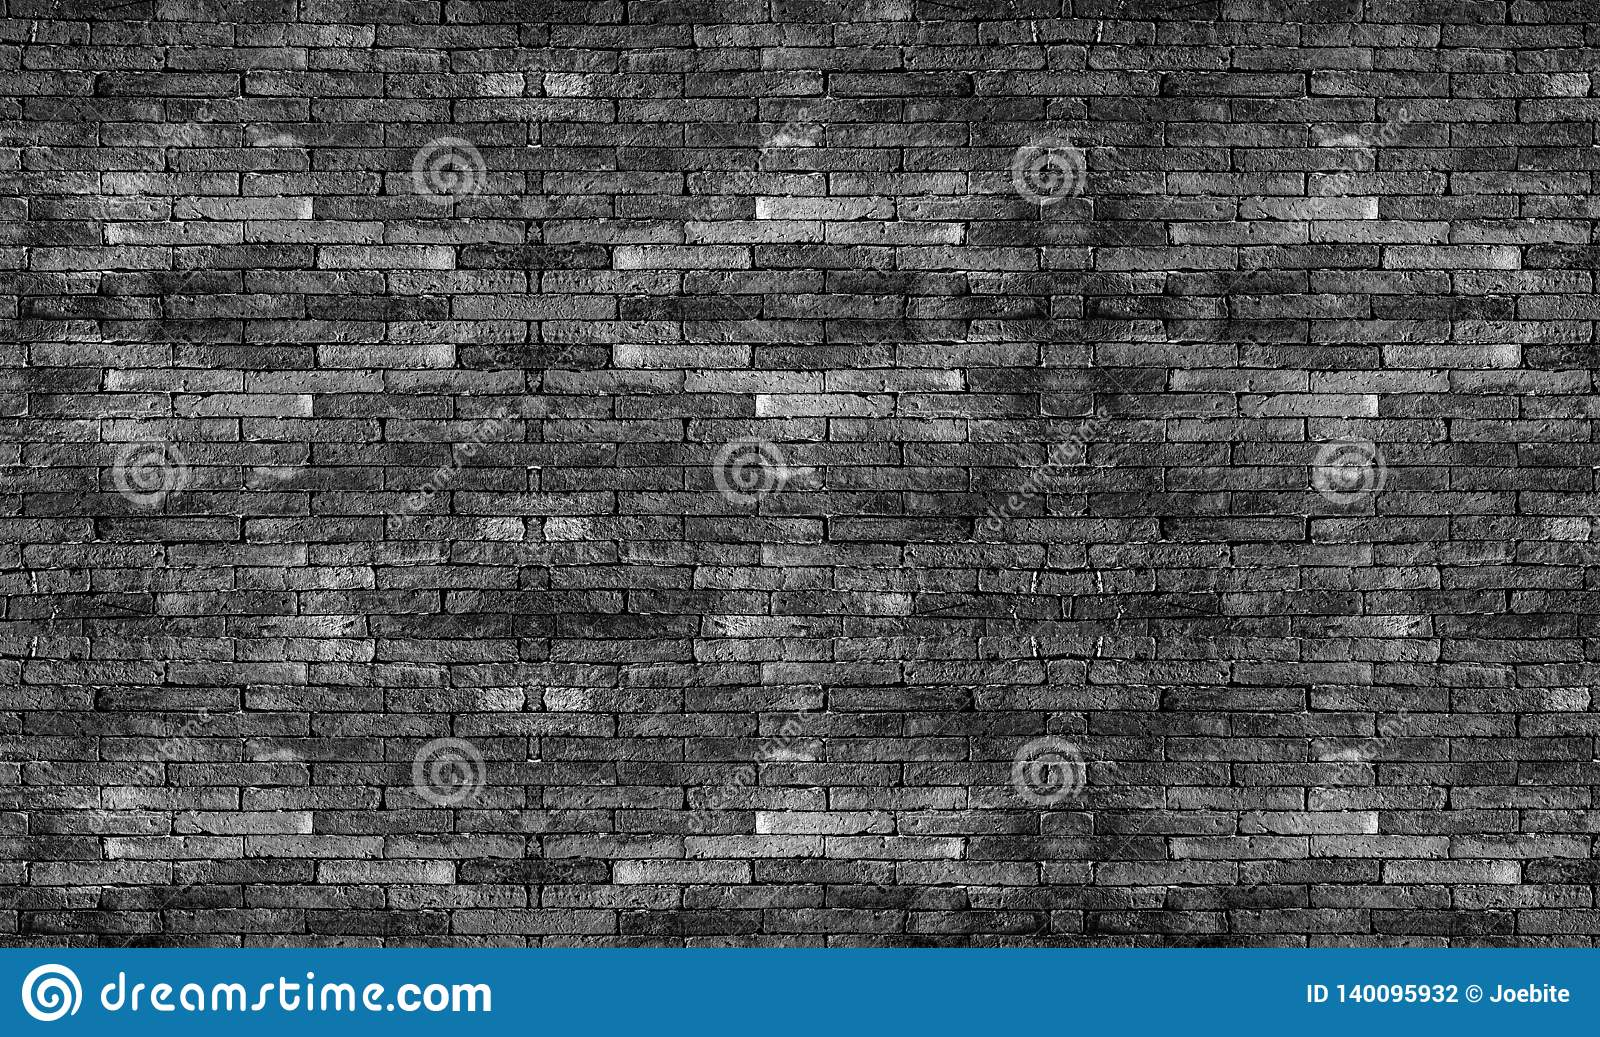 Black brick wall. The texture black stone blocks. Abstract background for design..